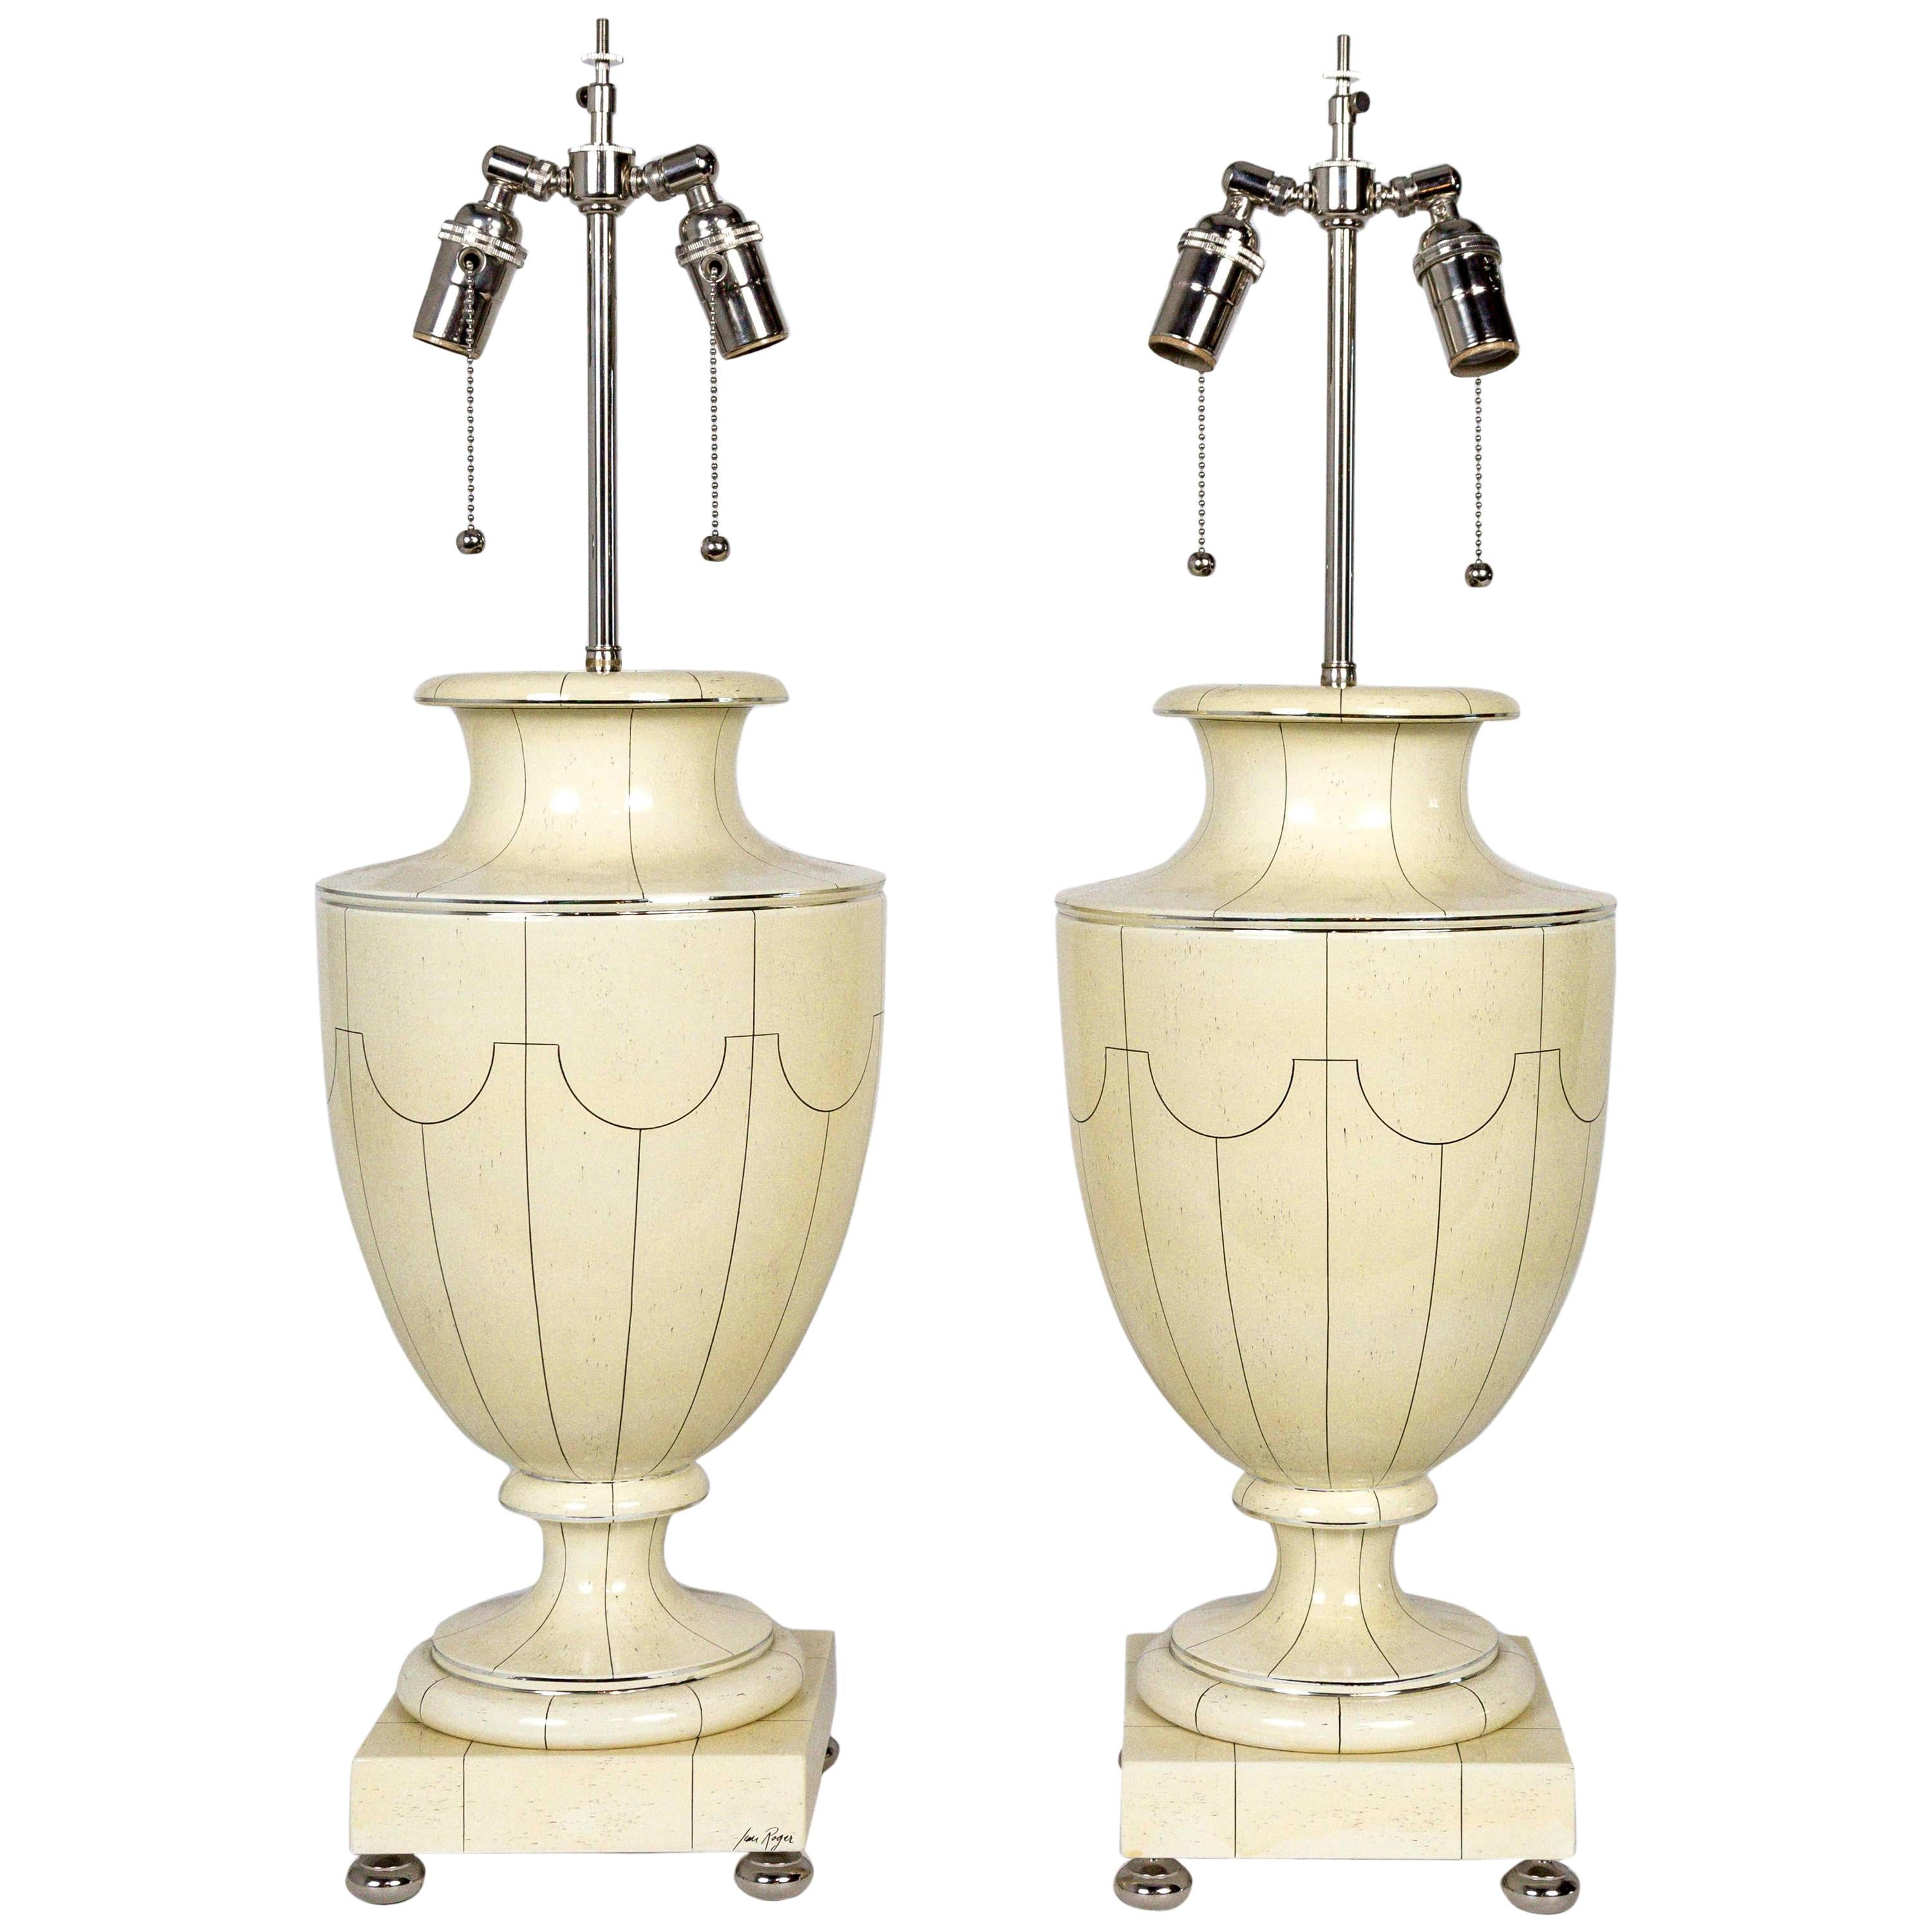 Silver Trimmed Ivory Ceramic Urn Lamps by Jean Roger